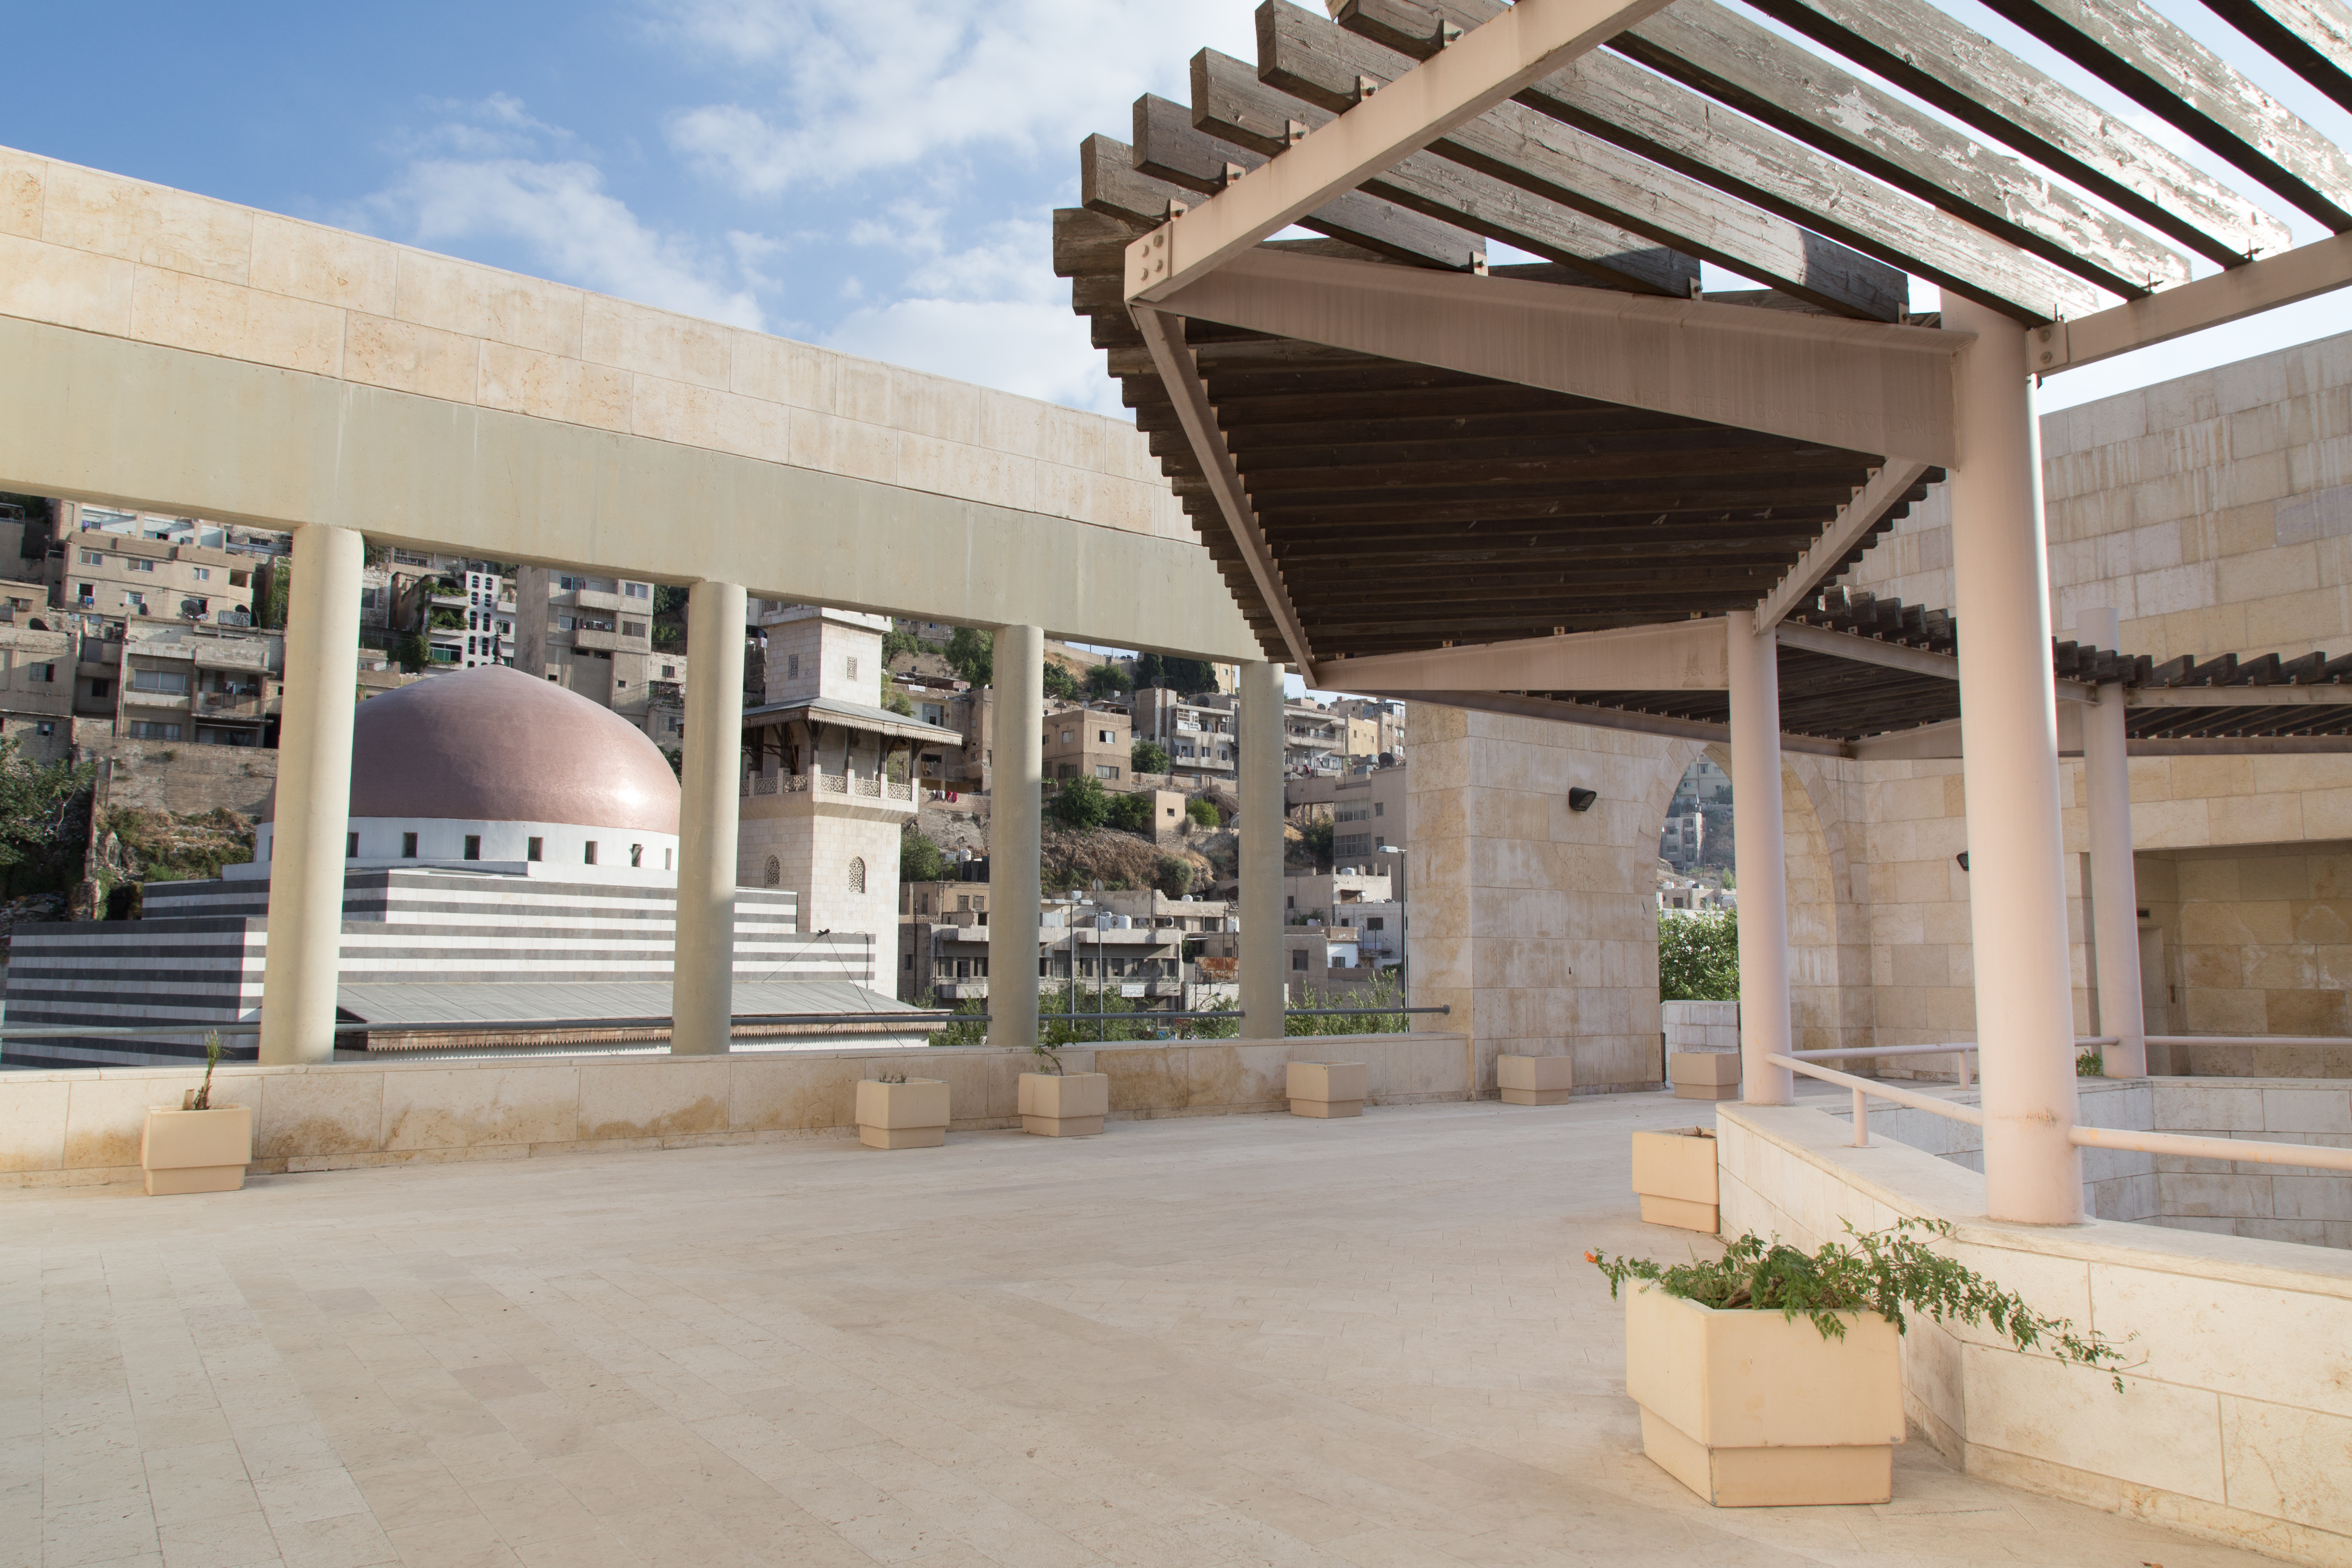 The Raghadan Bus Terminal, designed by Architects Ayman Zuaiter and Khaled Jadallah